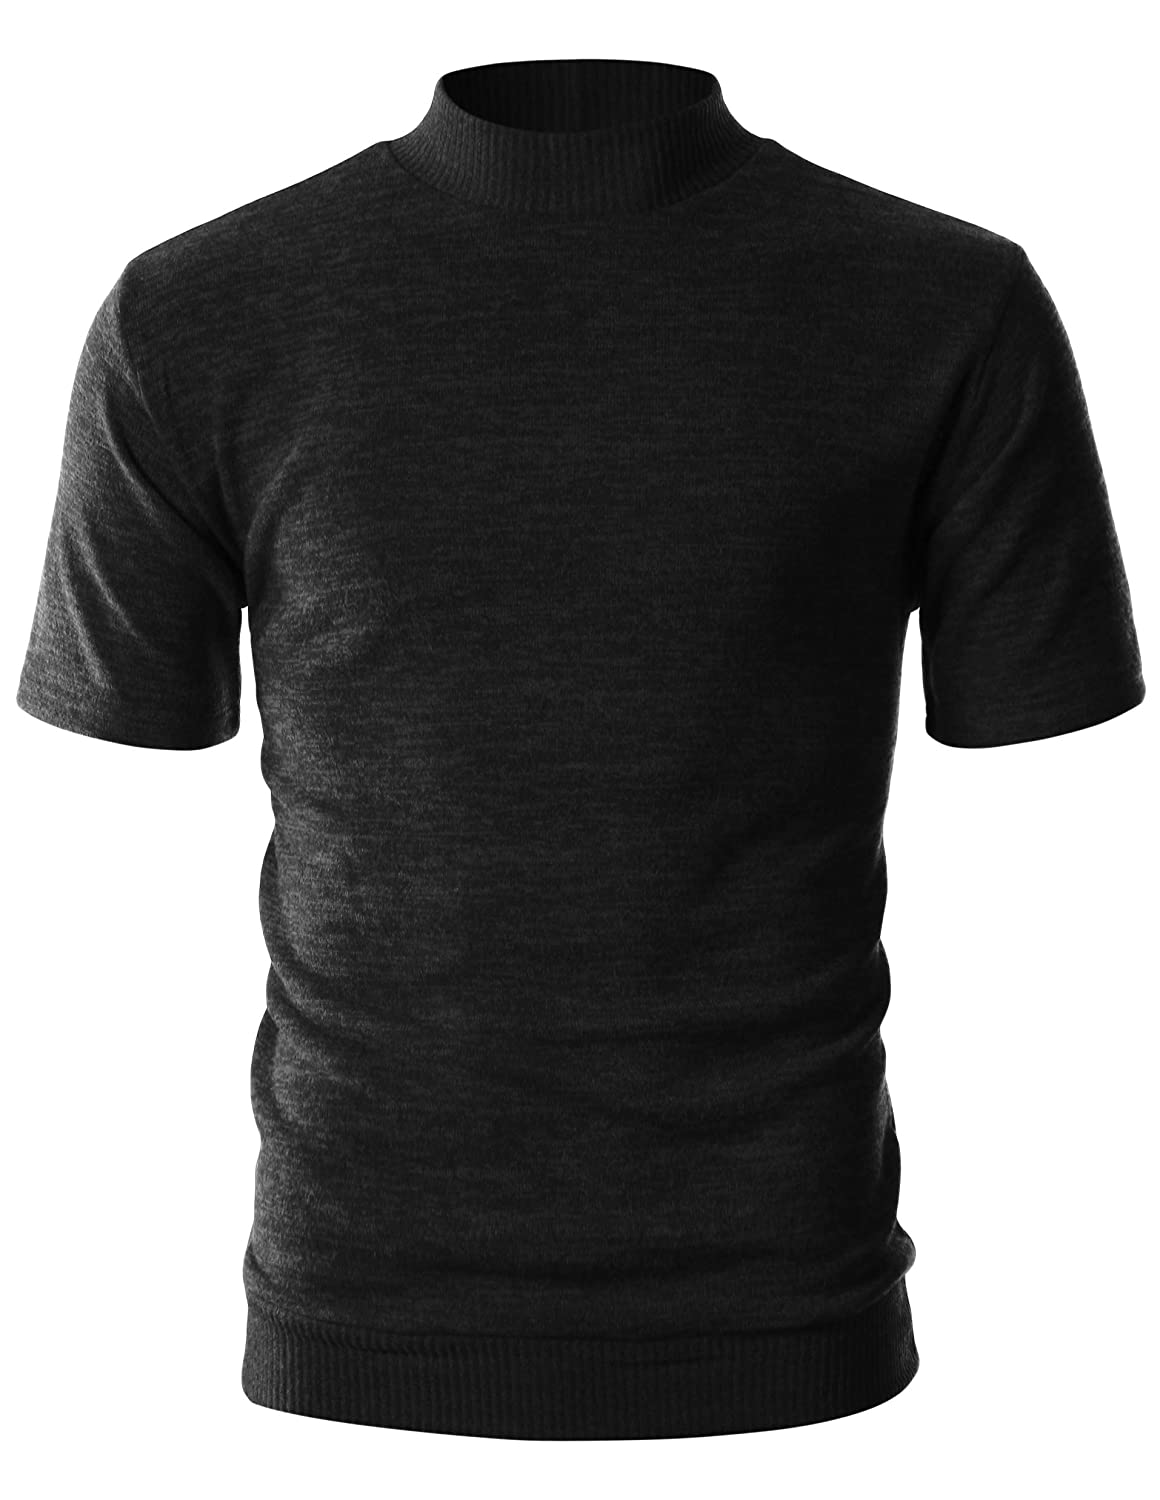 OHOO Mens Slim Fit Soft Cotton Short Sleeve Pullover Lightweight Mockneck with Warm Inside